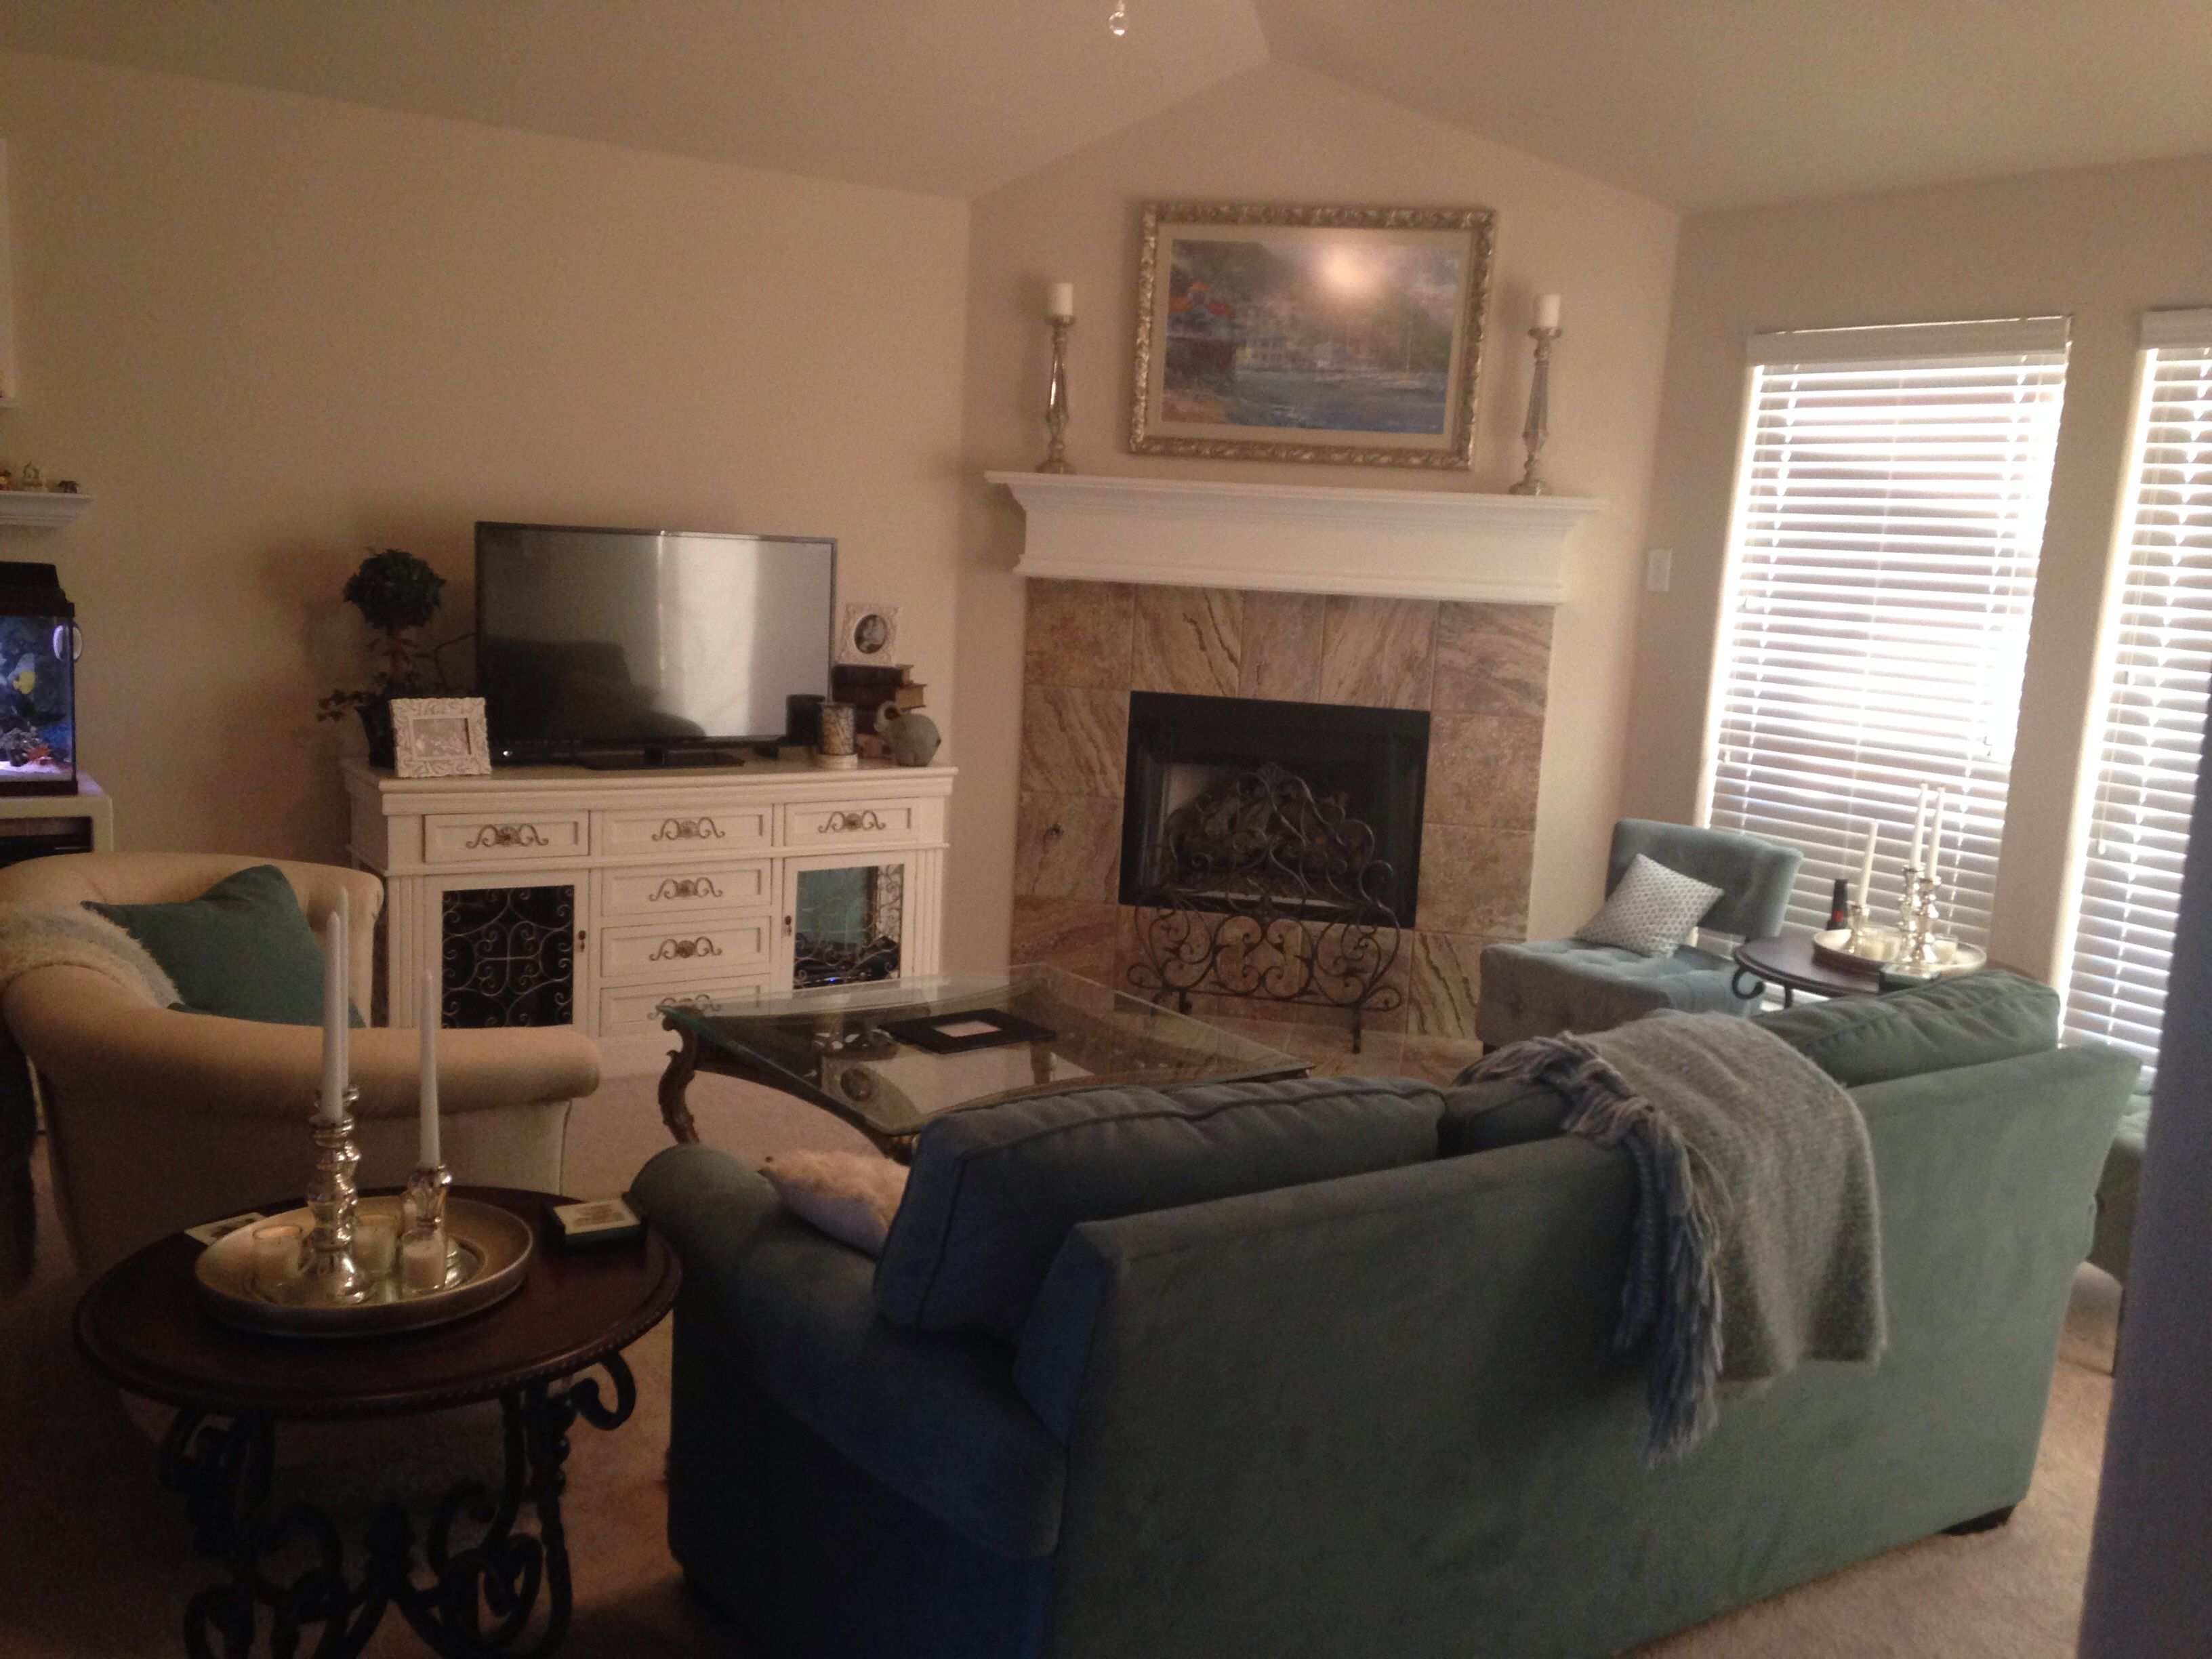 Living Room Couch And Loveseat Layout Cheap Furniture Stores Love This Corner Fireplace Especially With The Mismatched Exactly What I Want Wish Knew Source